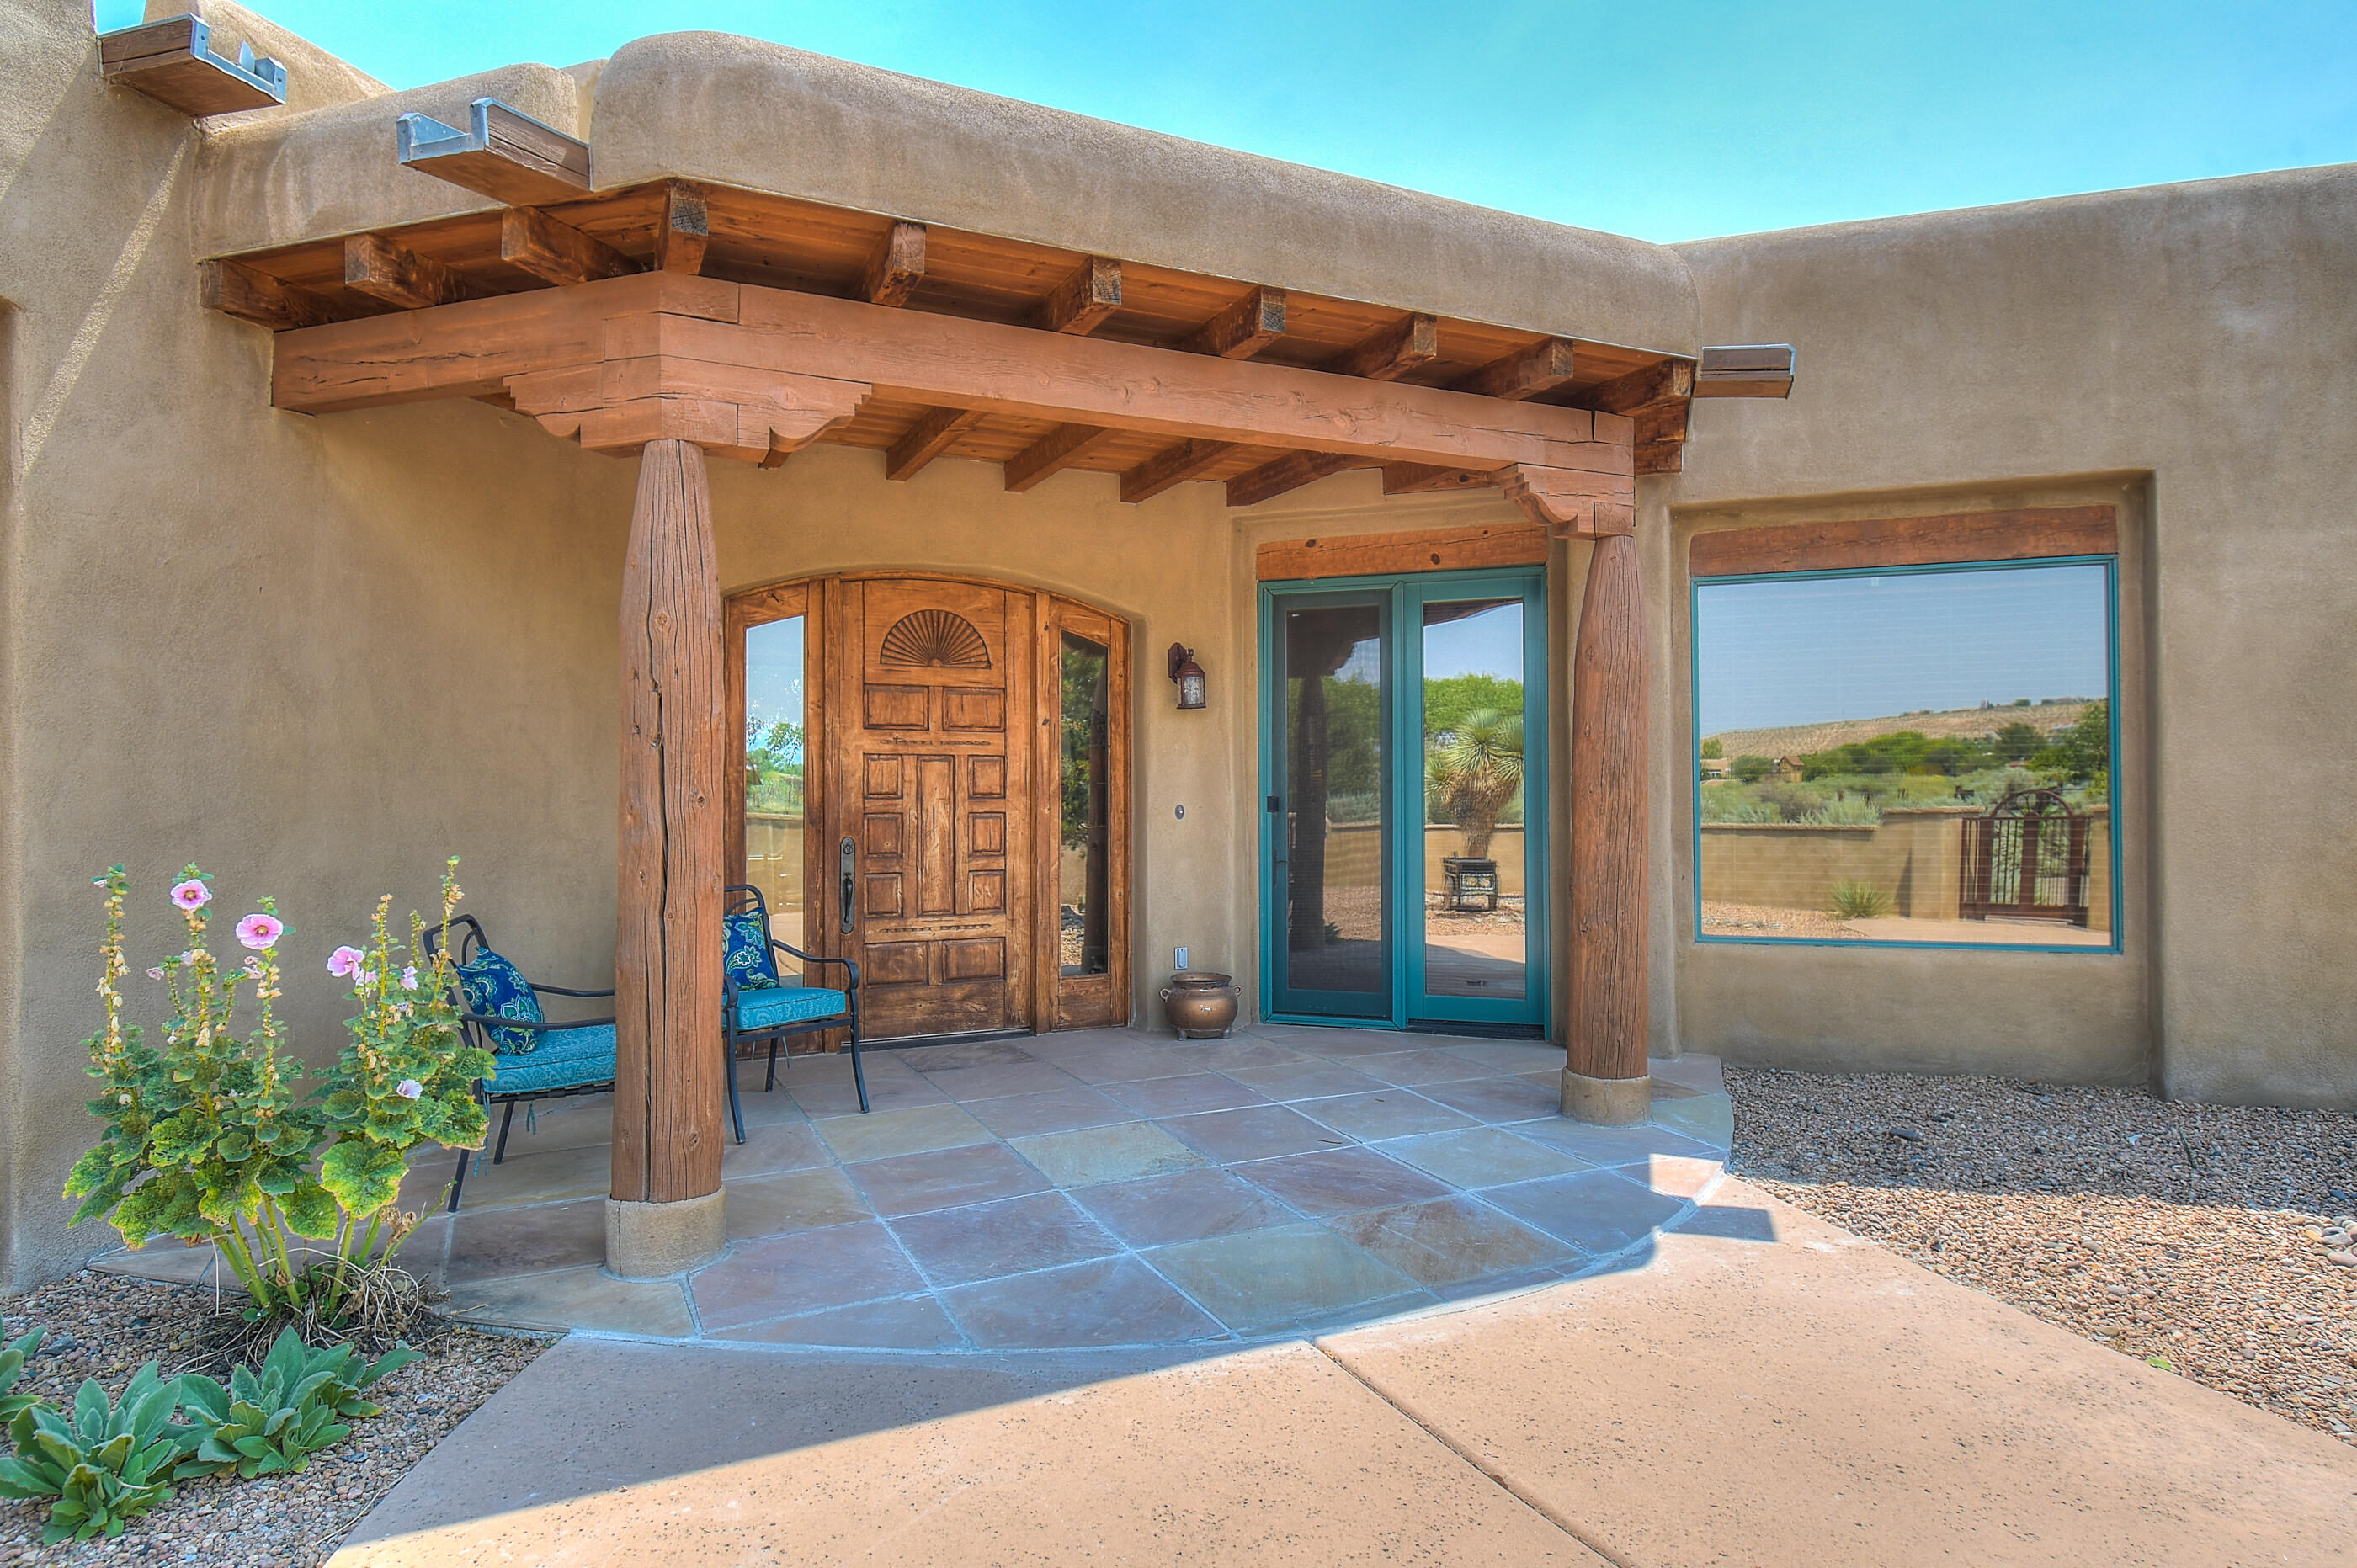 STUNNING SANDIA MOUNTAIN VIEWS!   Chef's Gourmet Kitchen. Custom Designer Touches Throughout.  Vaulted Ceilings.  Open Floorplan.  Attached 815sf MIL unit.  4 bdrms/4 baths/Separate Entrance Office.  4100 sf.  Huge Outdoor Living Spaces with Views and Landscaping